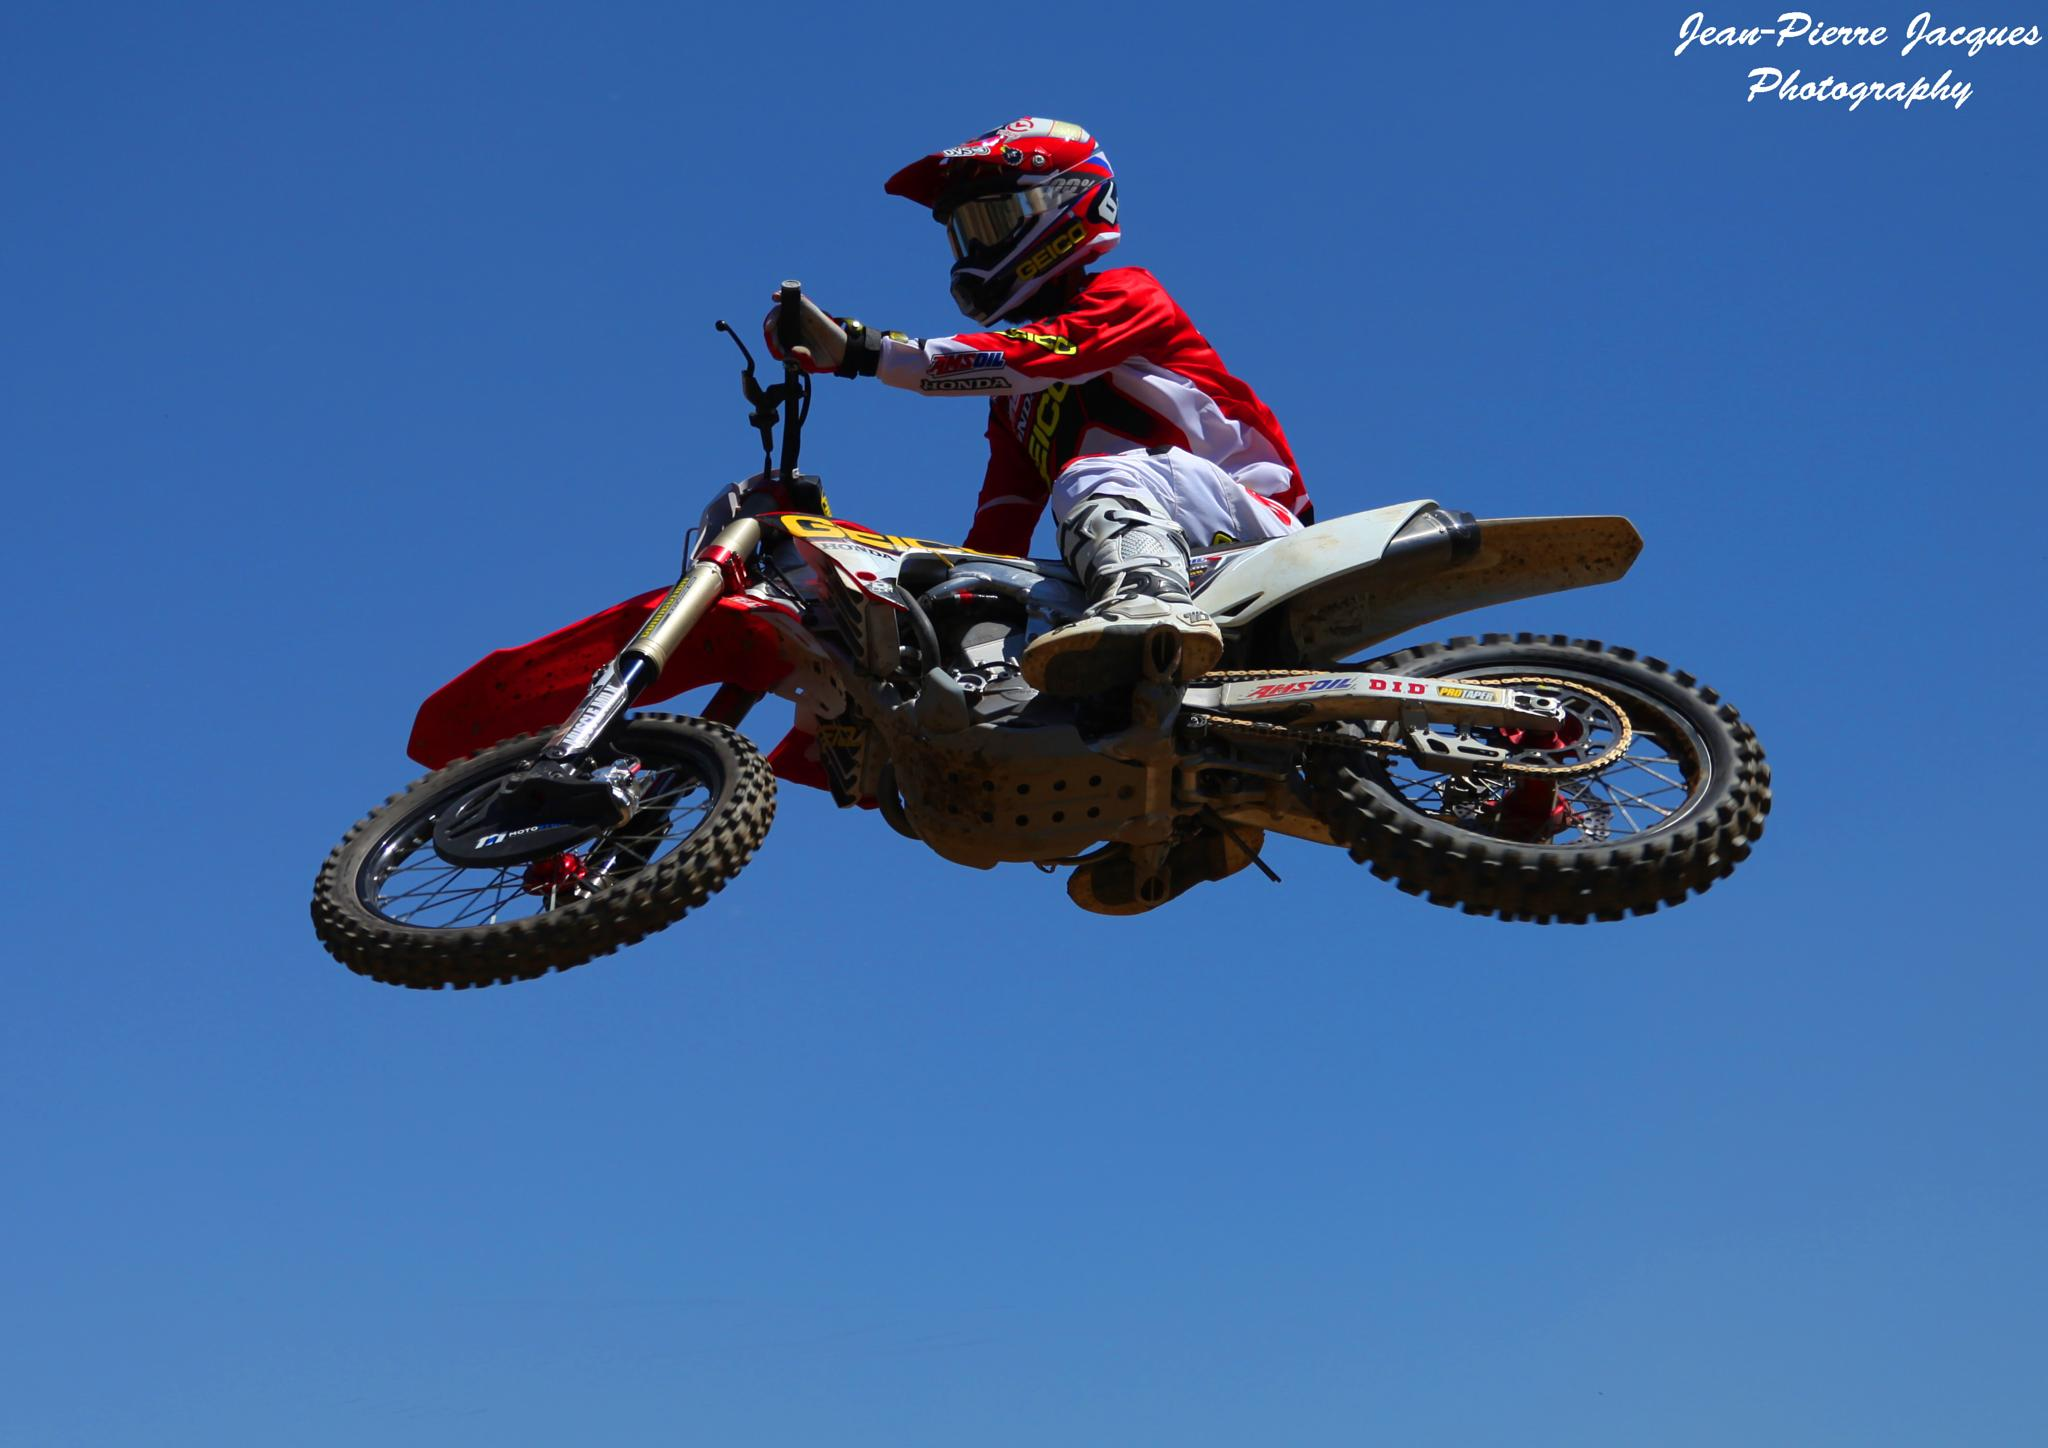 2014 April. MILESTONE, CA. ( Justin Bogle ) by Jean-Pierre Jacques